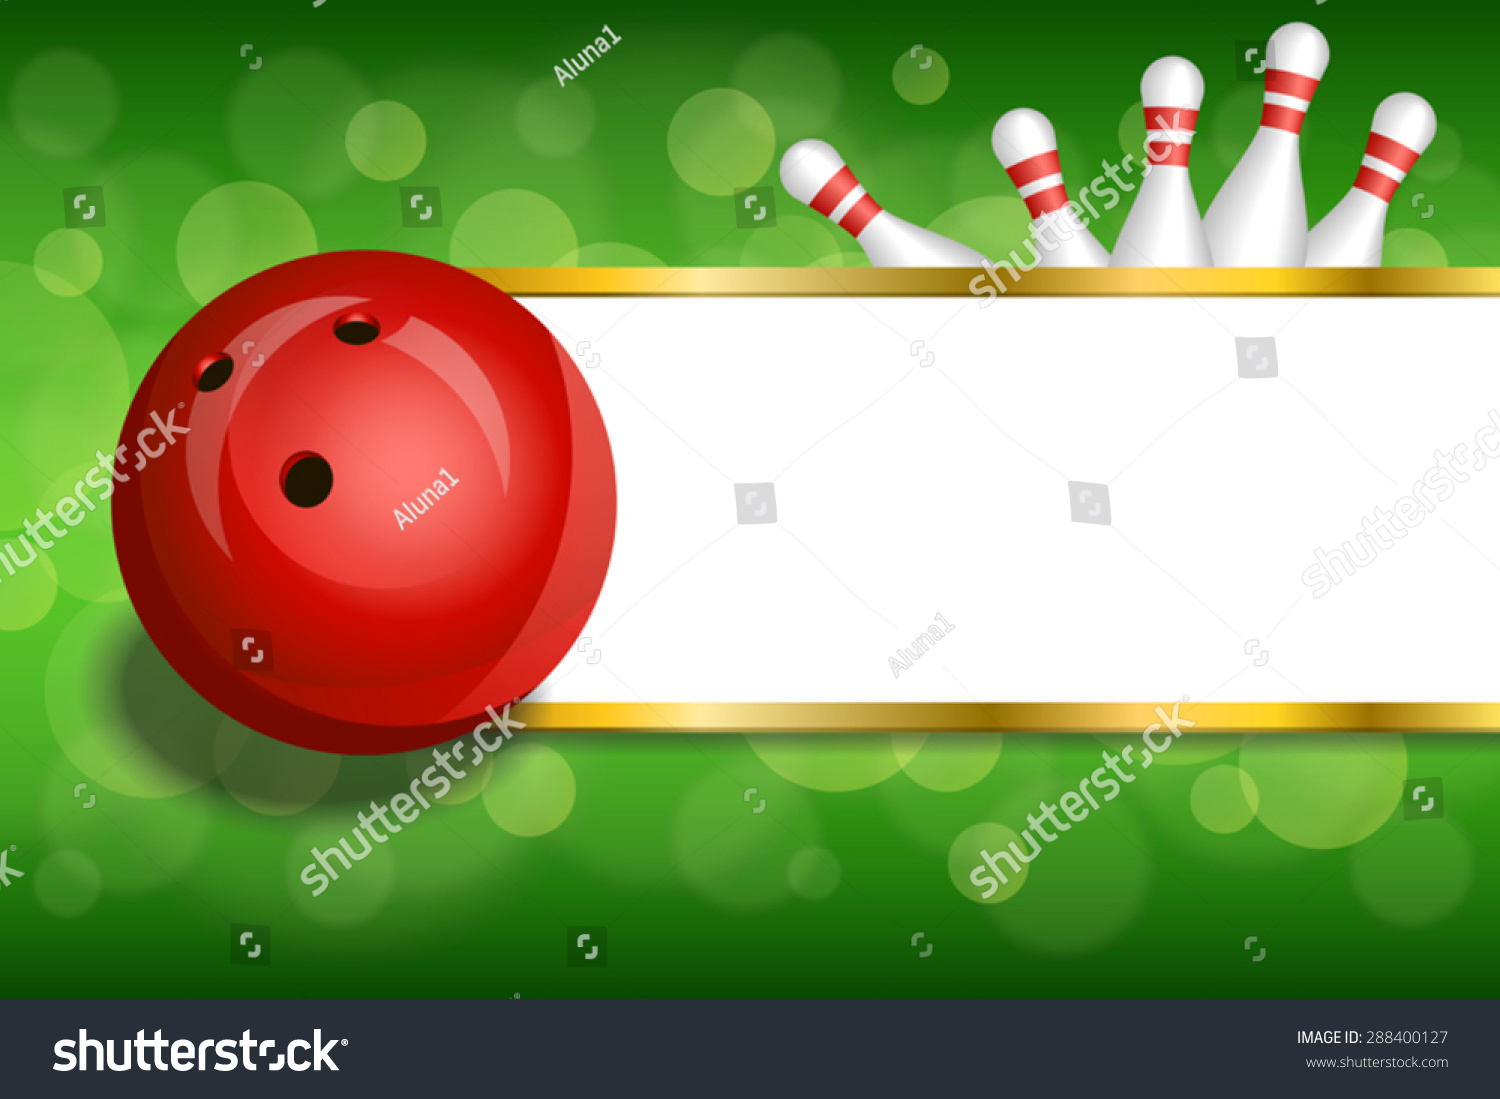 Background Abstract Green Gold Stripes Bowling Stock Vector HD ...